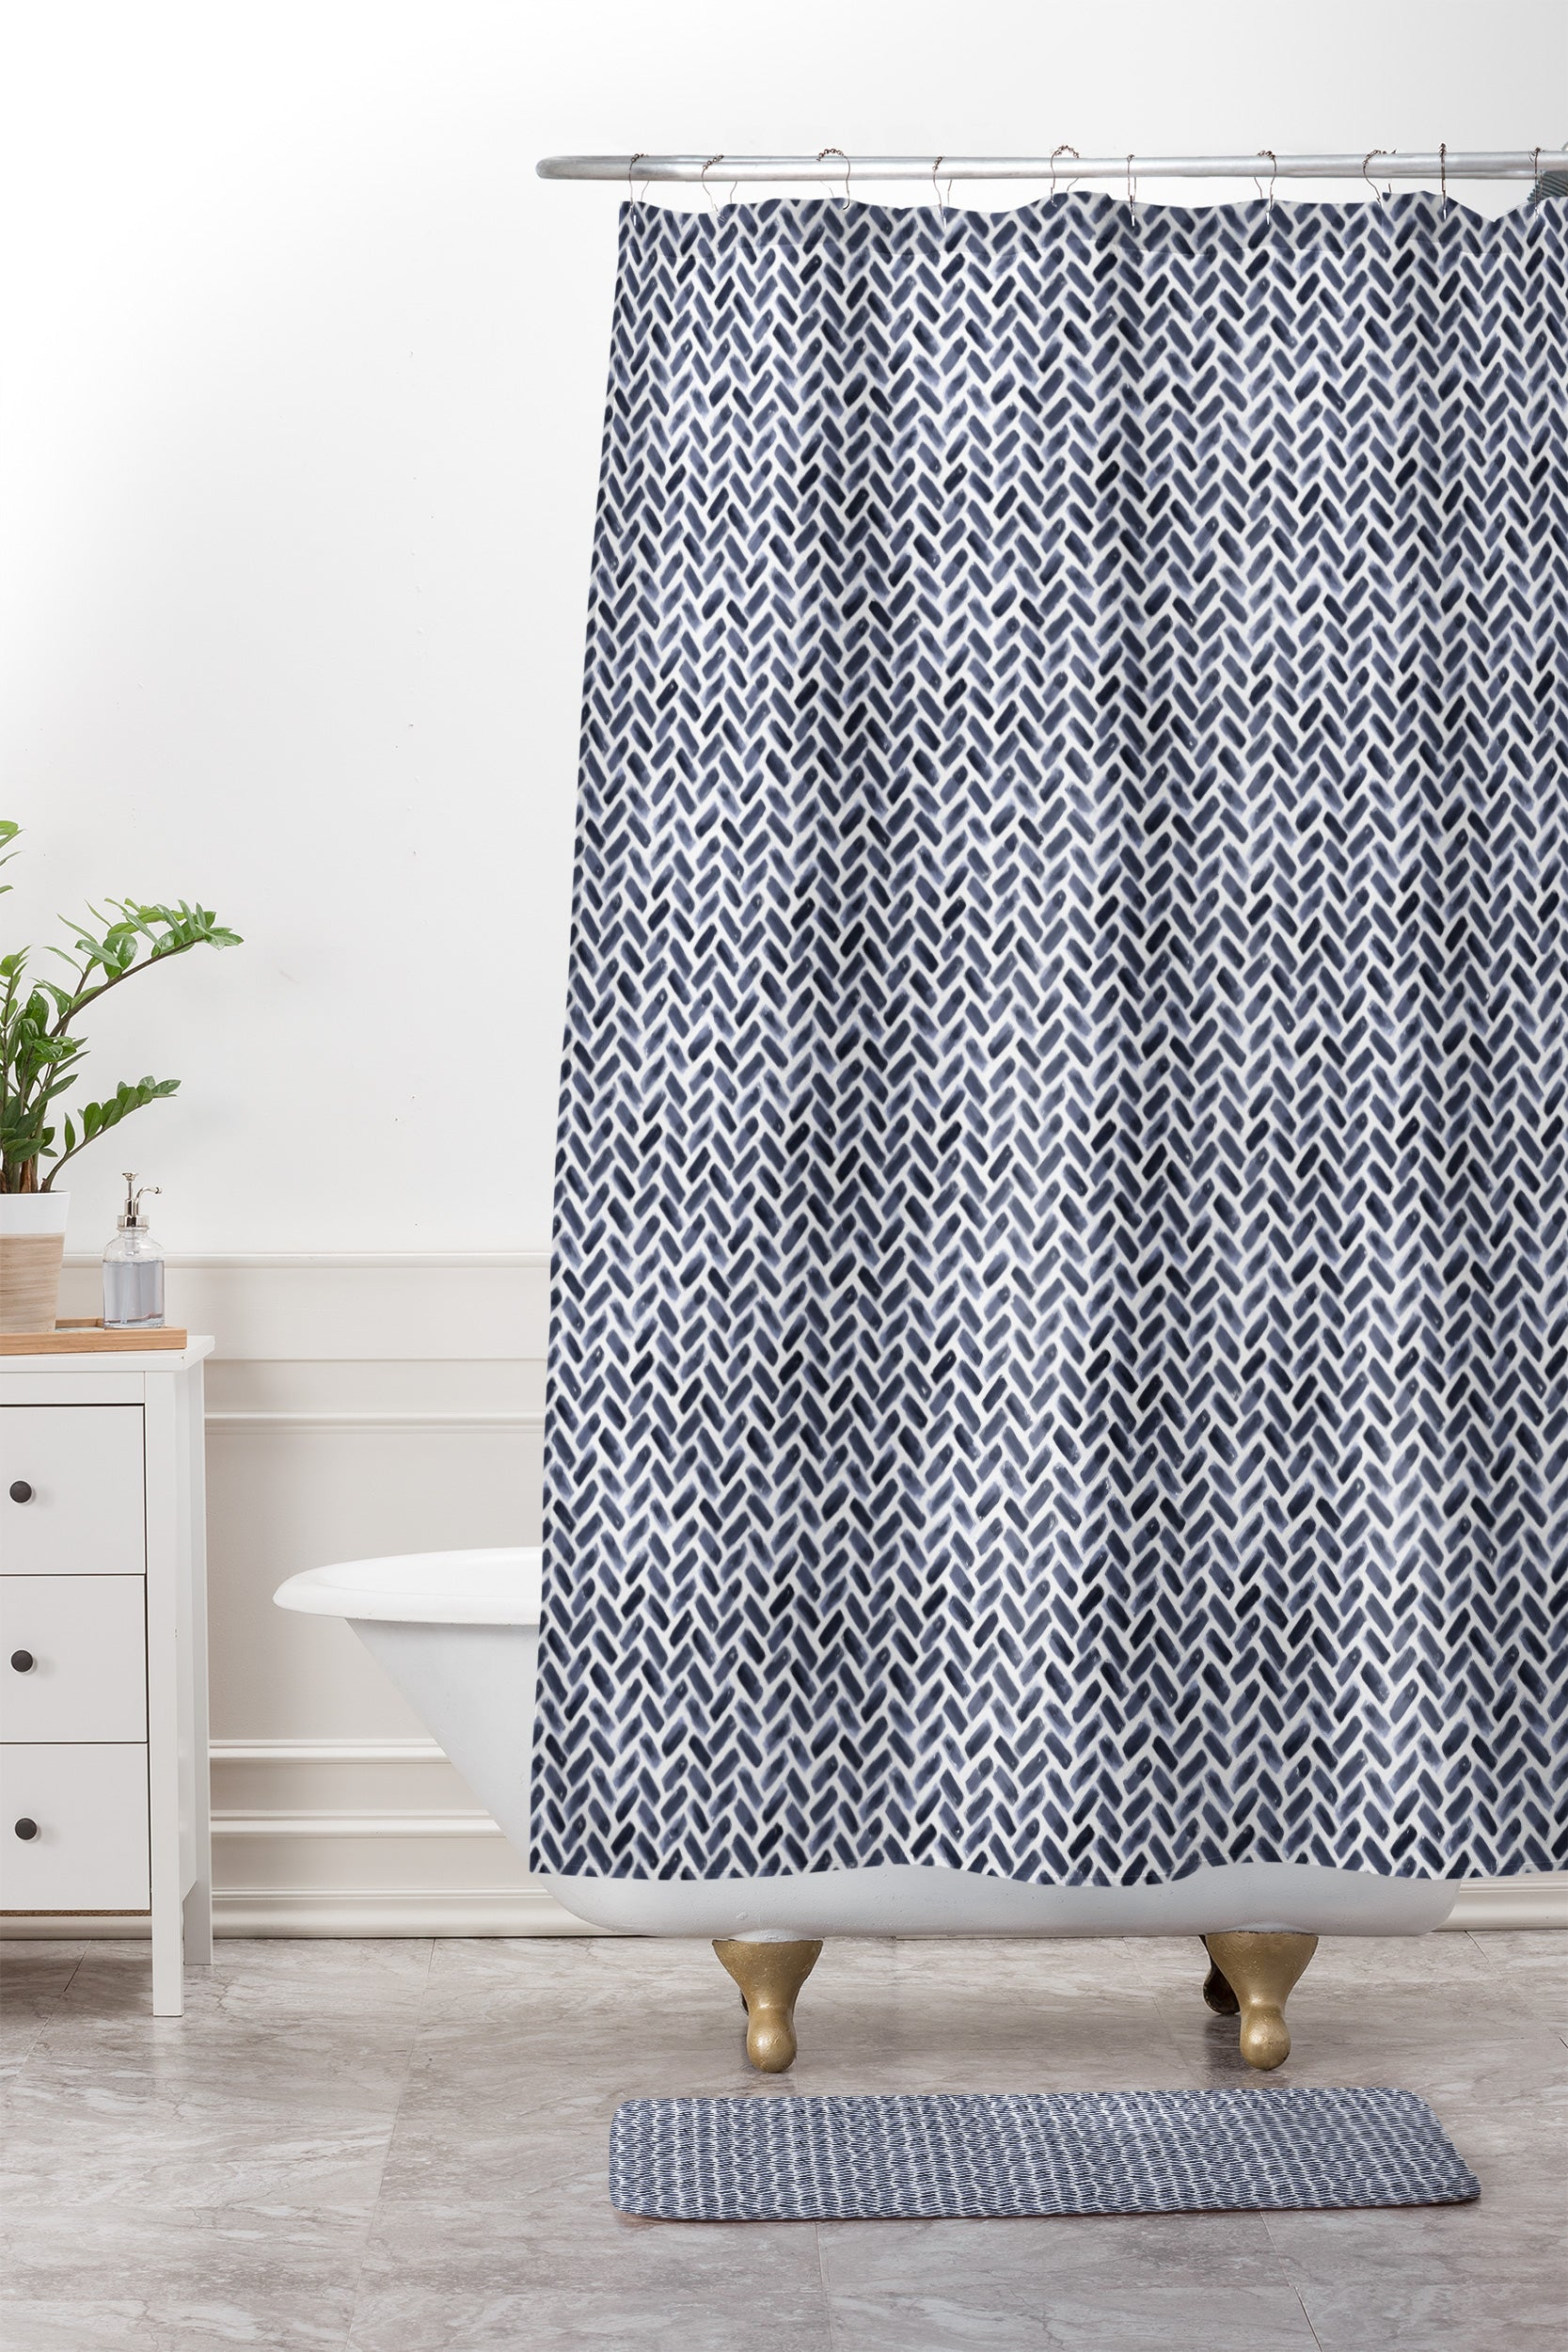 Shower Curtain And Mat By Little Arrow Design Co